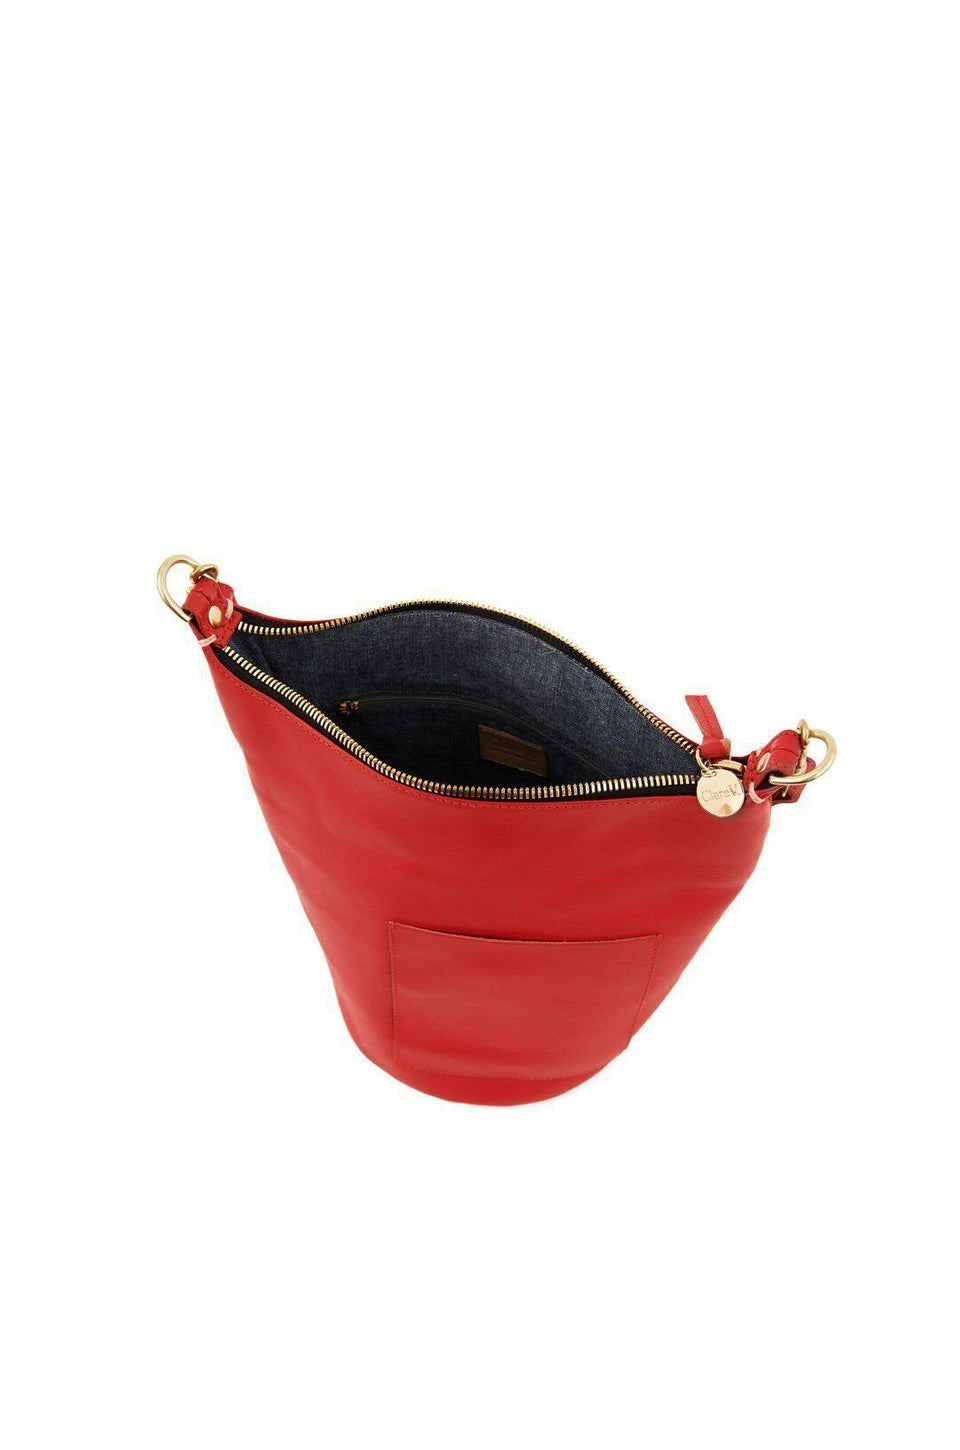 Clare V Petite Jeanne Purse In Cherry Red